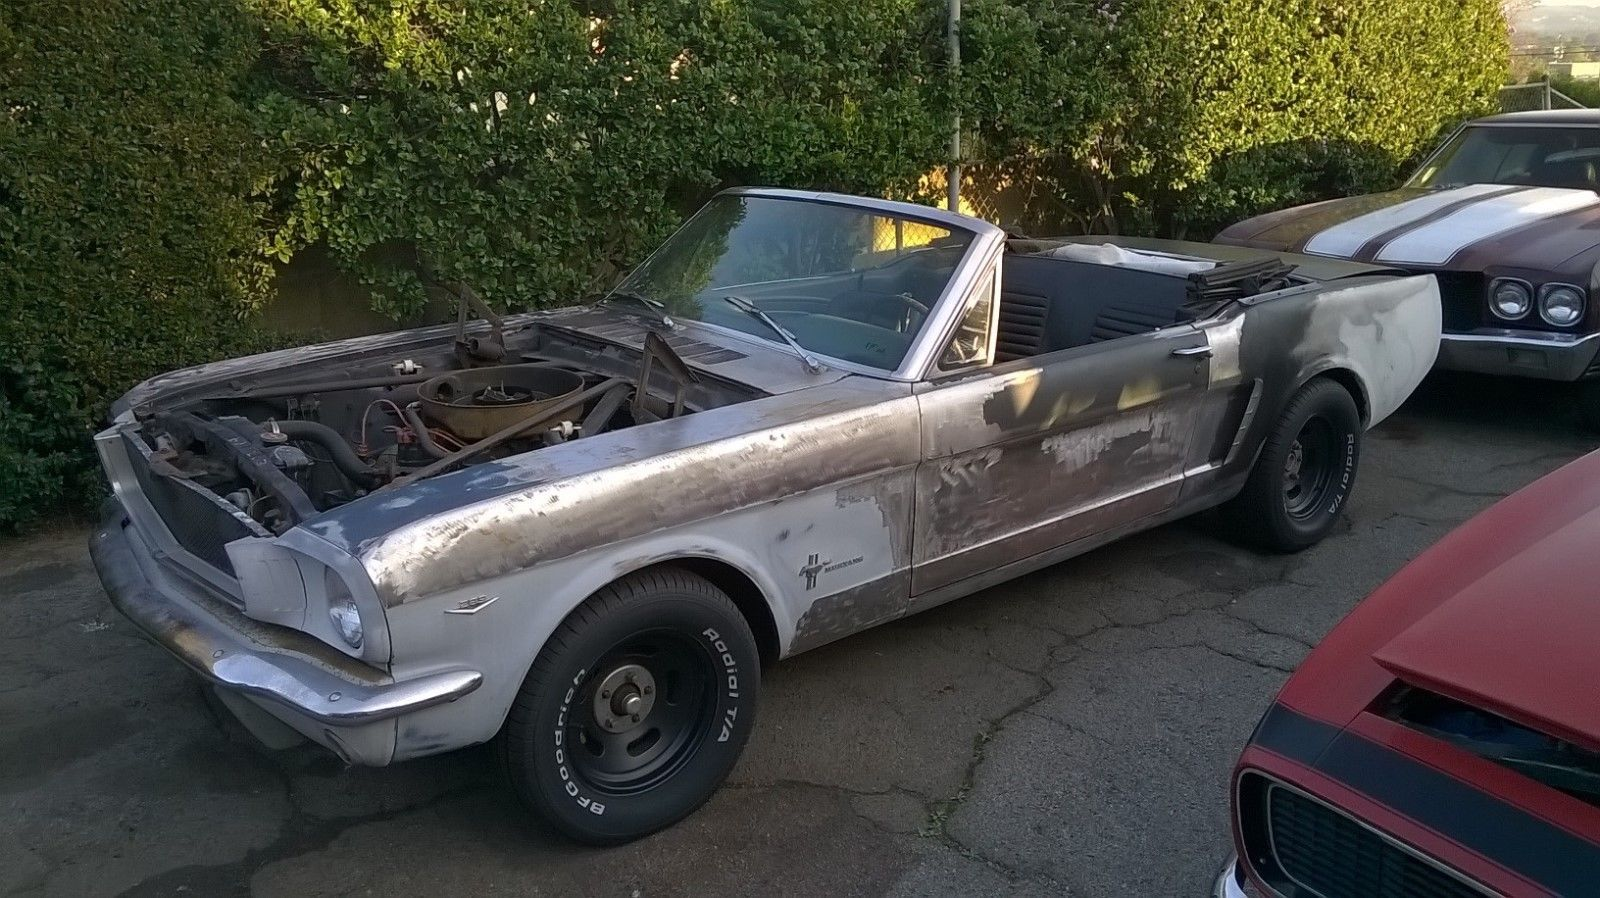 Cool Amazing 1965 Ford Mustang 1965 Ford Mustang V8 Convertible California Car Original Sheet Metal No Rust 2018 Ford Mustang Mustang Motorcycles For Sale